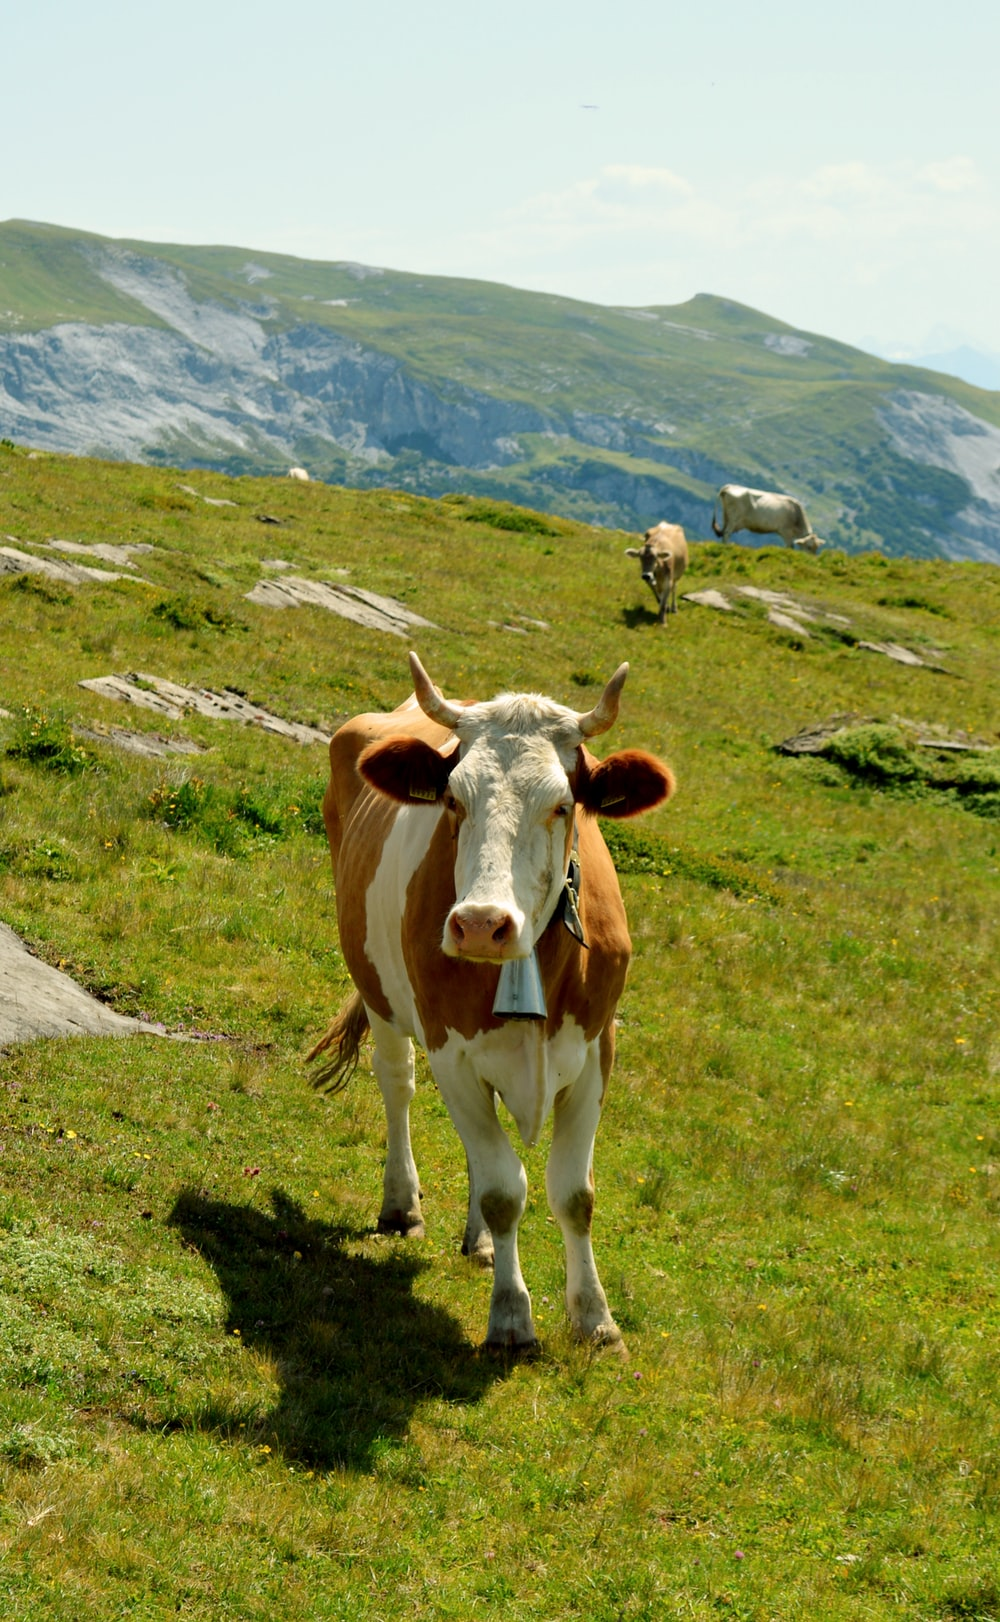 brown and white cow on green grass field during daytime